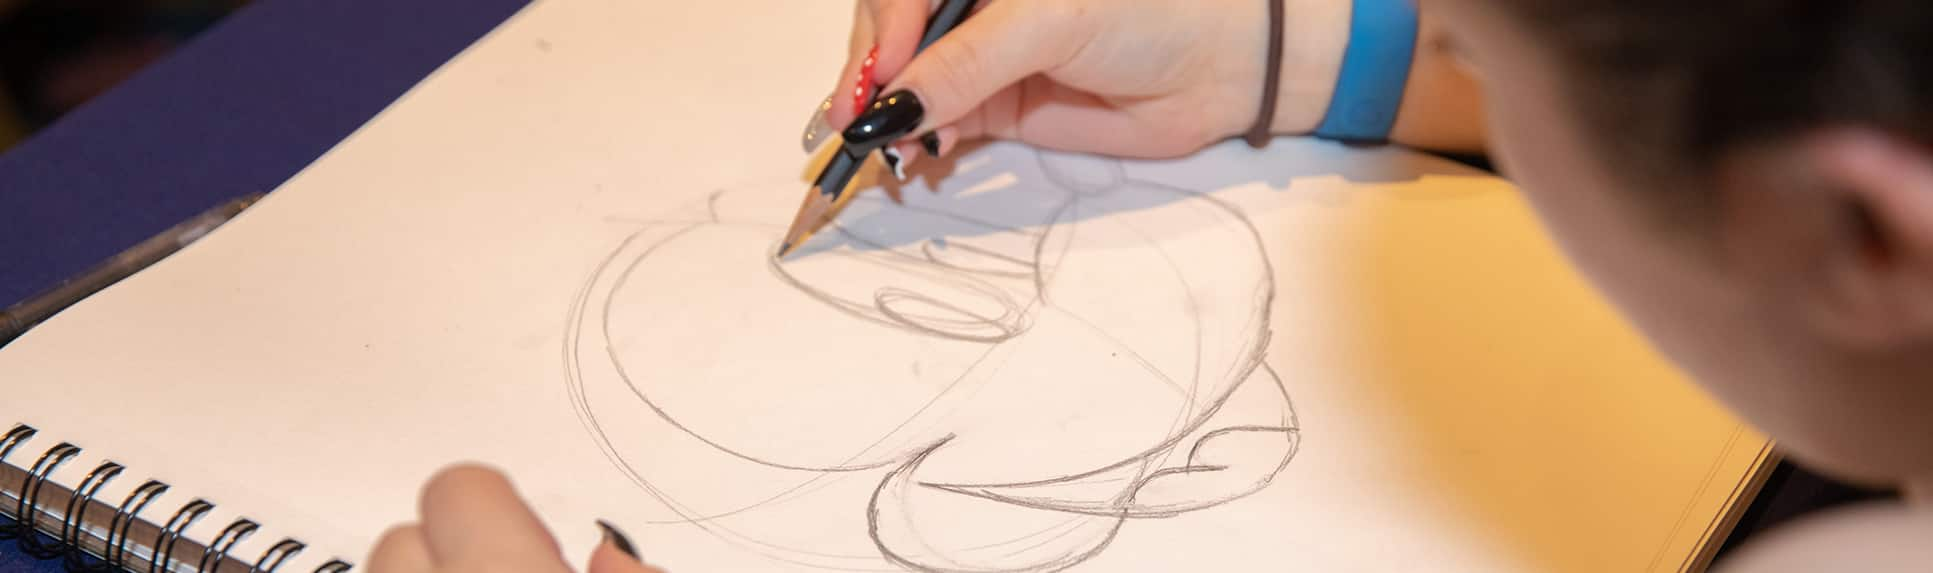 A teenage girl draws a picture of Mickey Mouse on a pad of paper